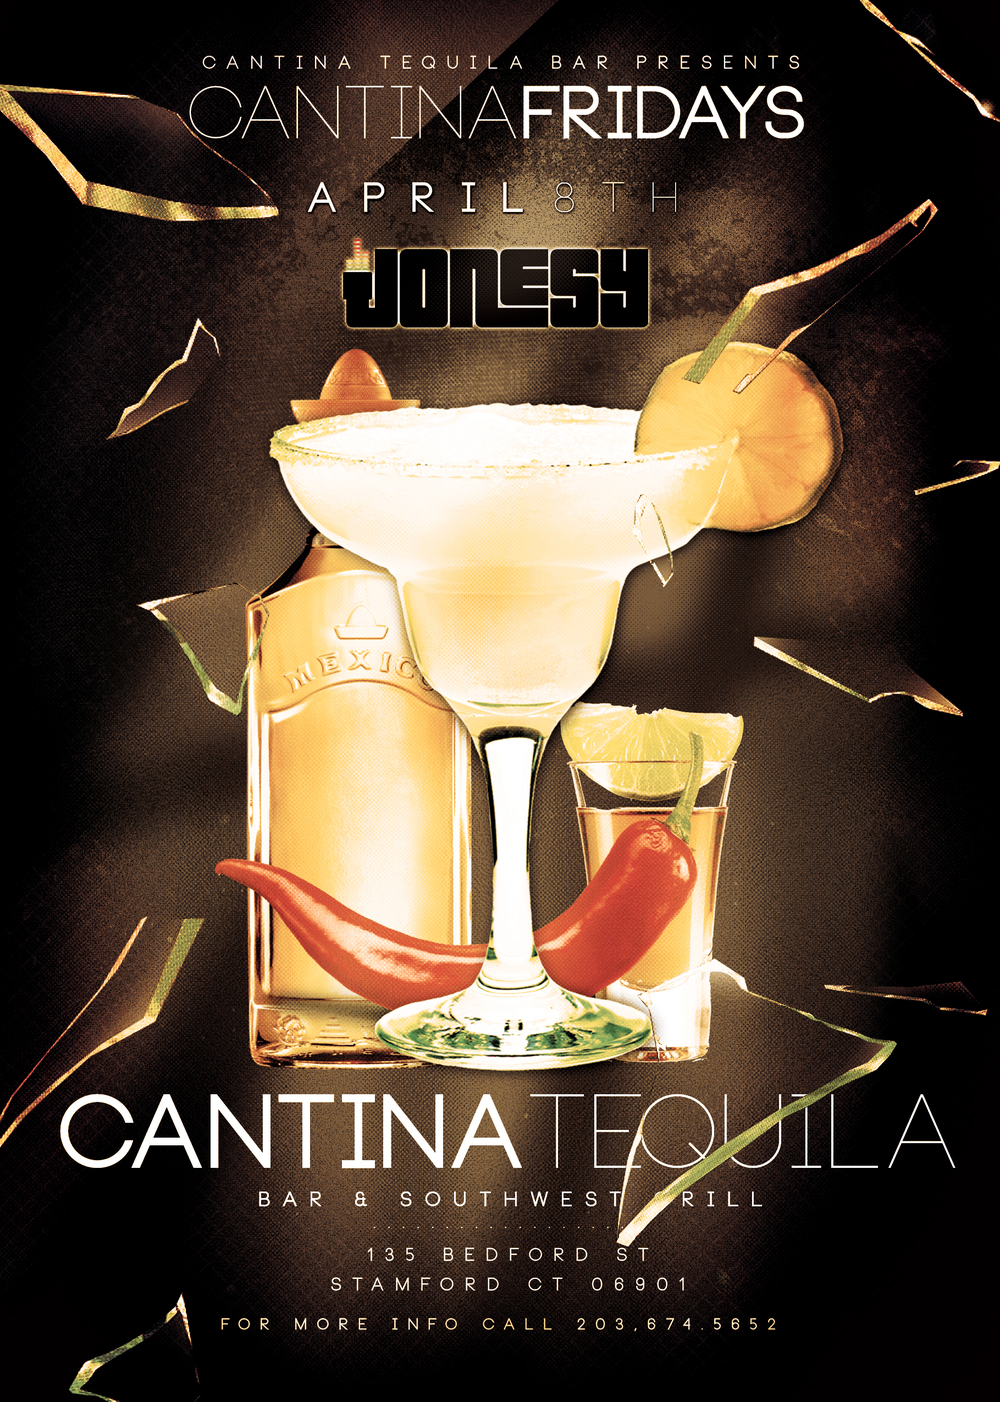 FRIDAY, APRIL 8TH JOIN US AT CANTINA TEQUILA BAR & SOUTHWEST GRILL.  MUSIC BY YOURS TRULY BEGINS AT 9PM.  MEET ME THERE!